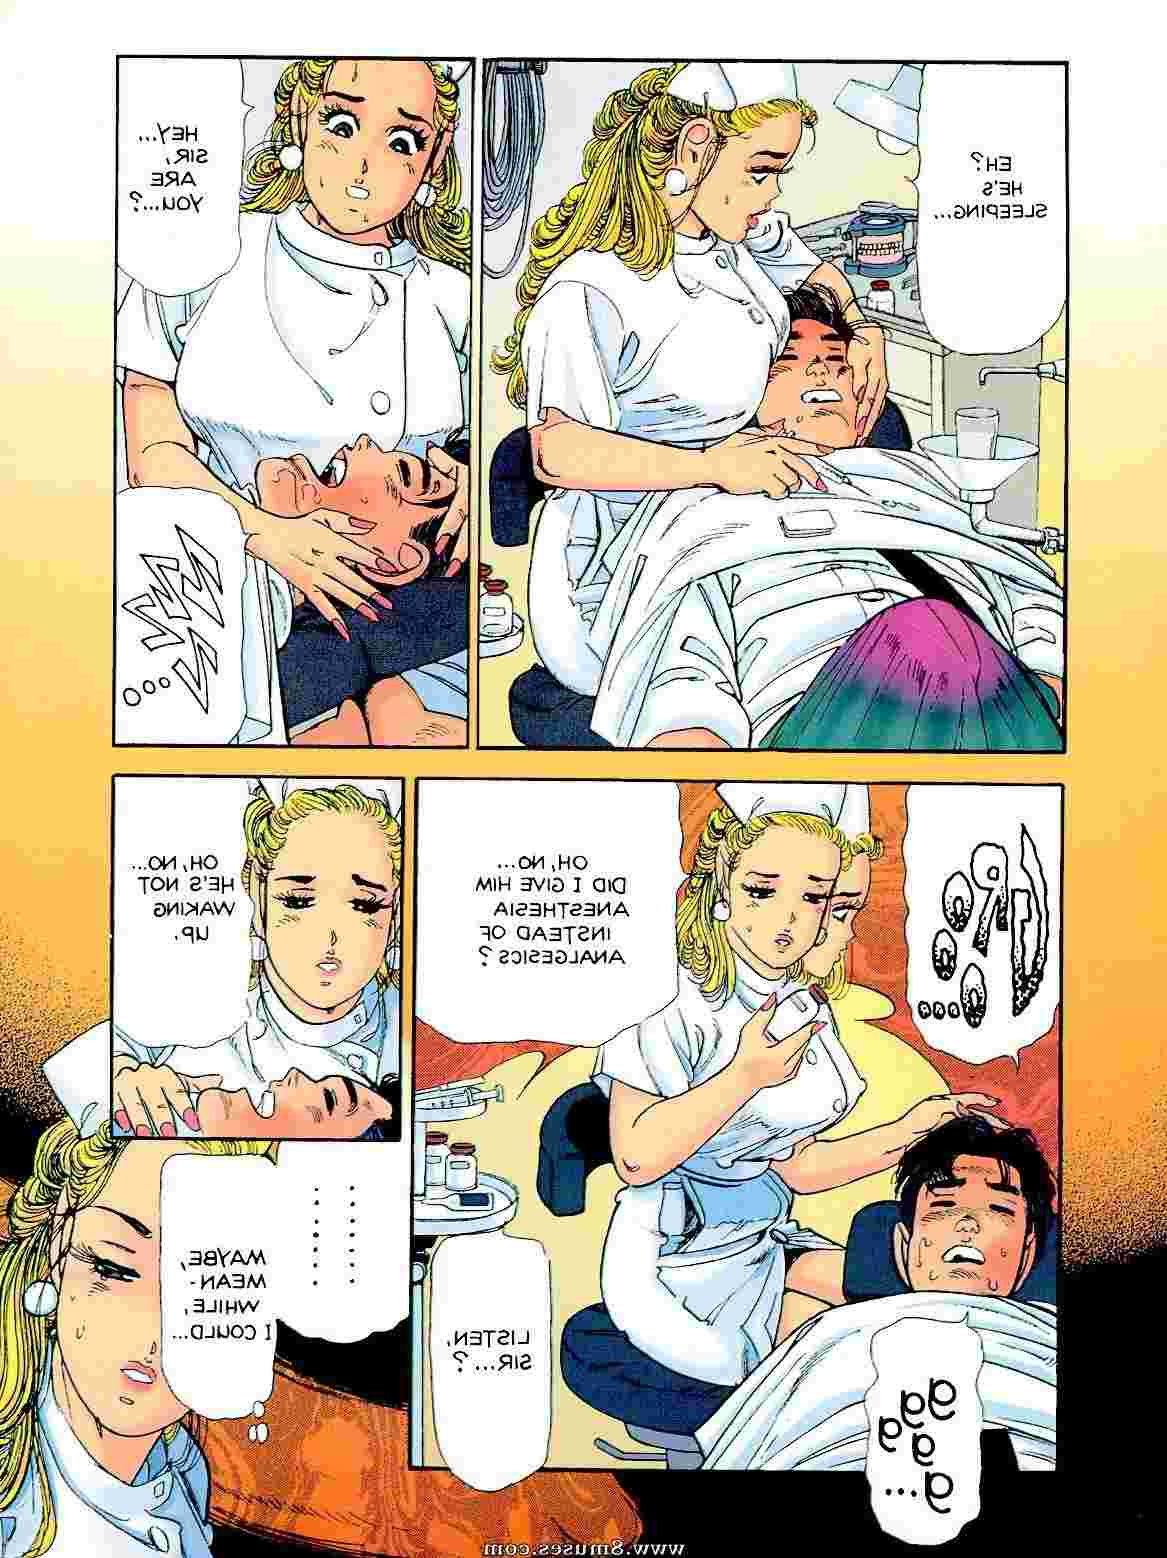 Chiyoji-Tomo-Comics/Miss-130-Give-Me-A-Shot Miss_130_-_Give_Me_A_Shot__8muses_-_Sex_and_Porn_Comics_8.jpg